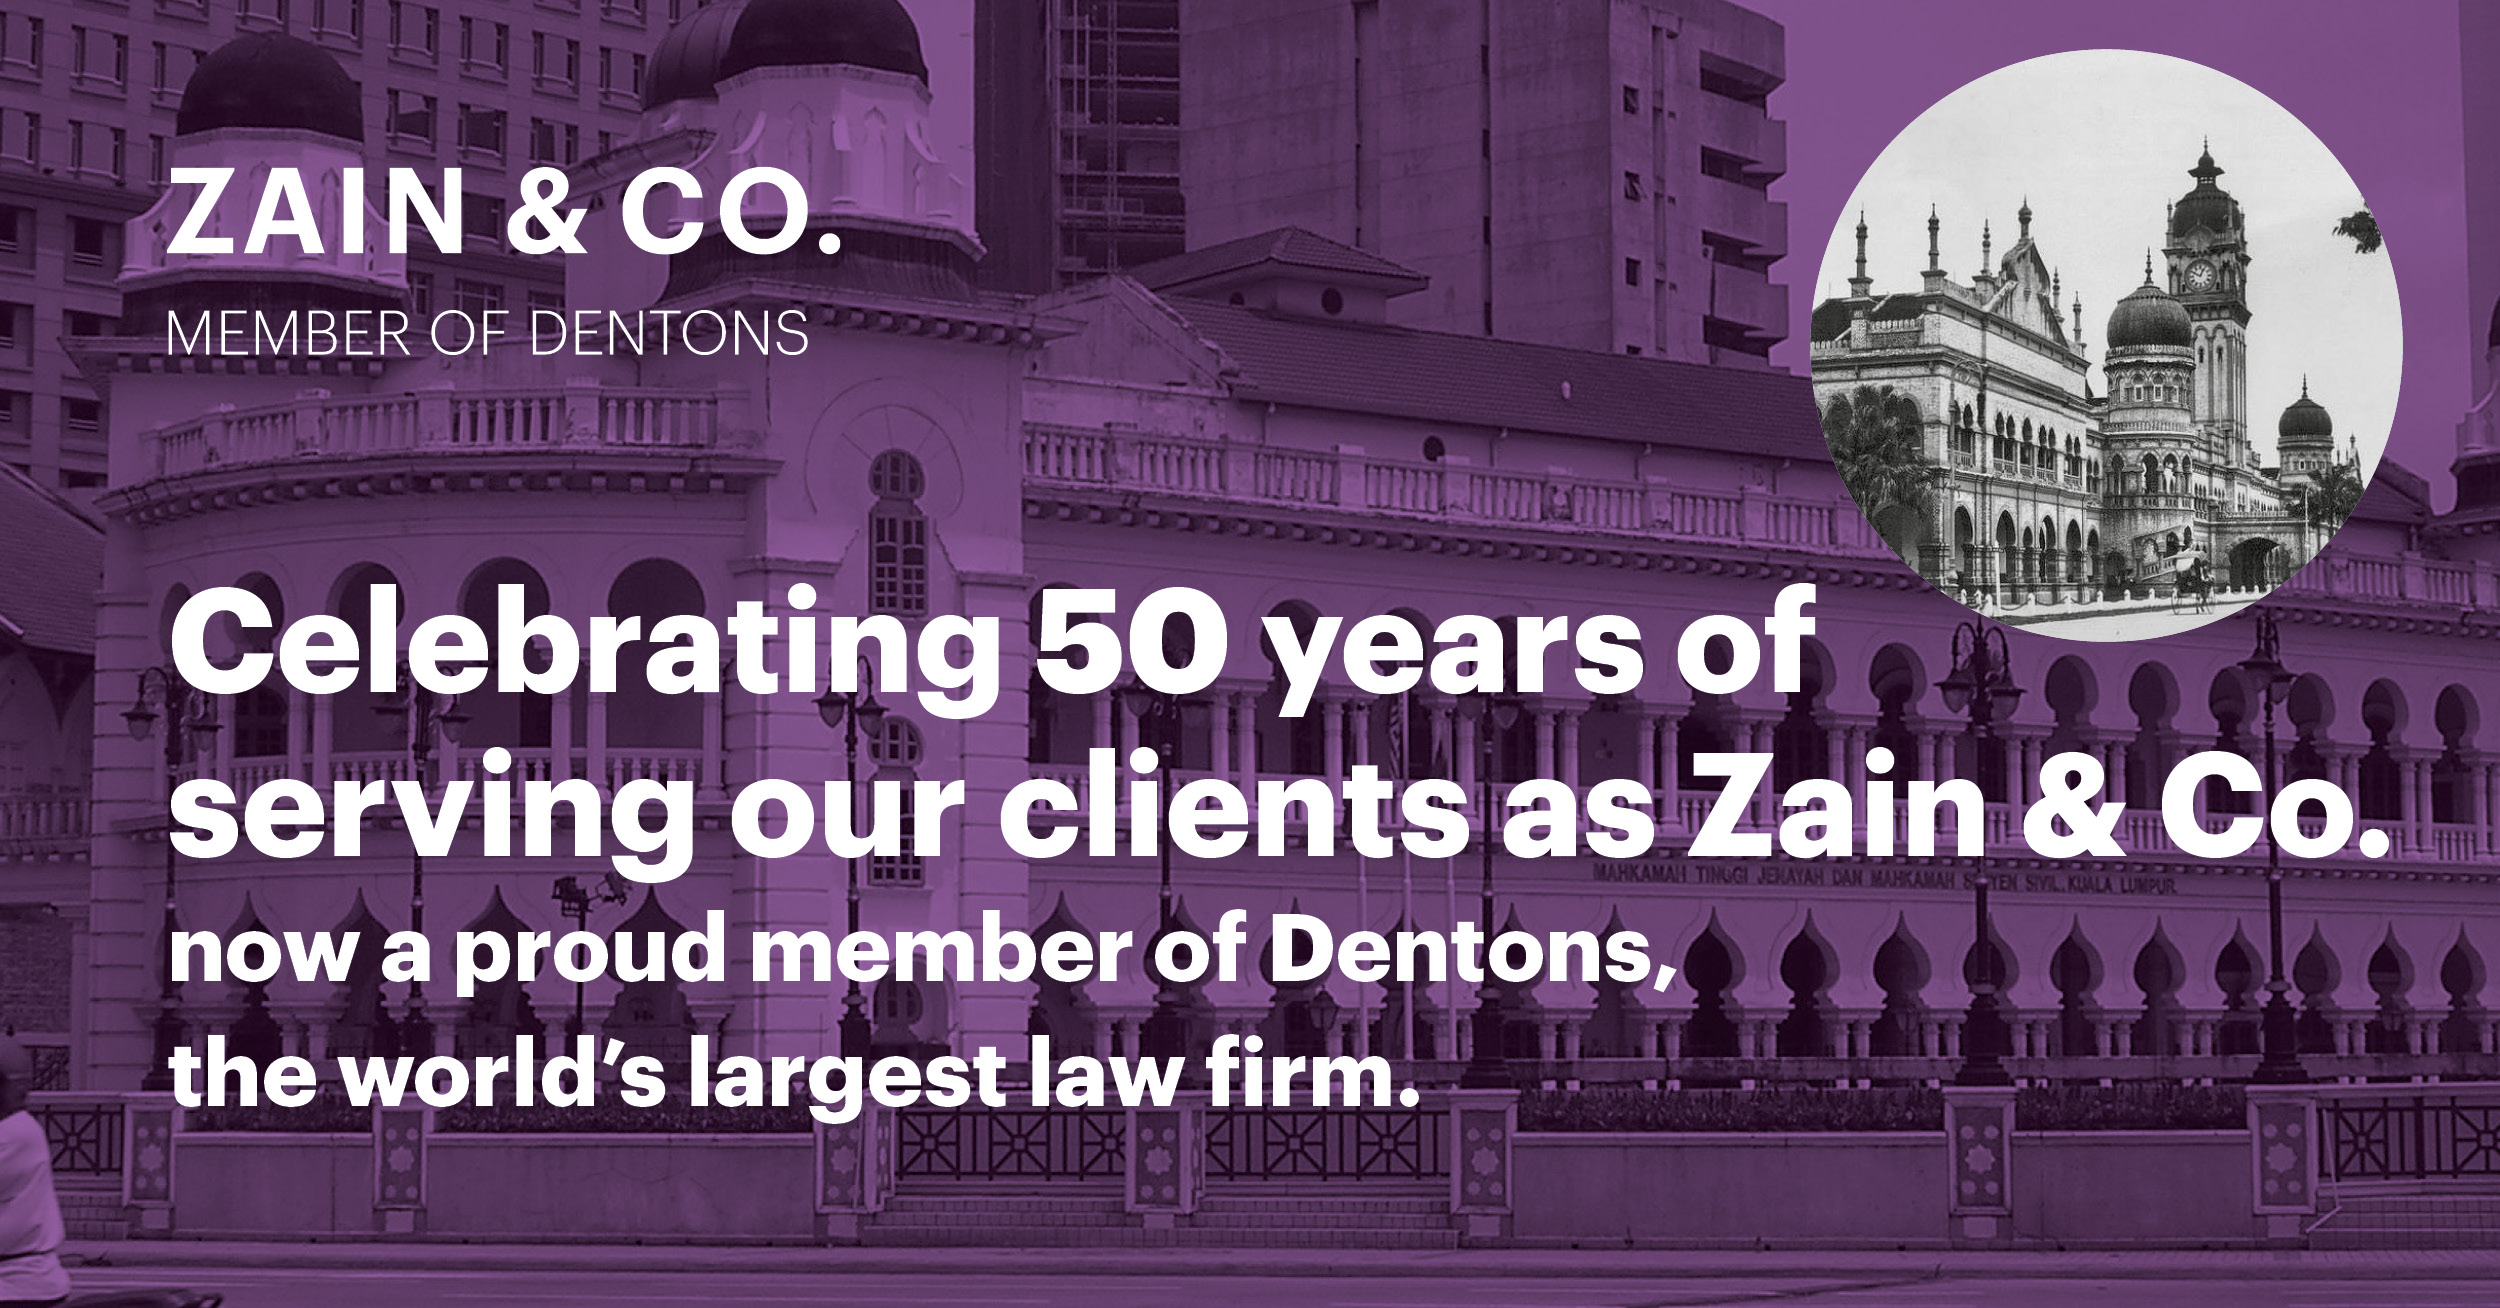 Zain and Co 50 years